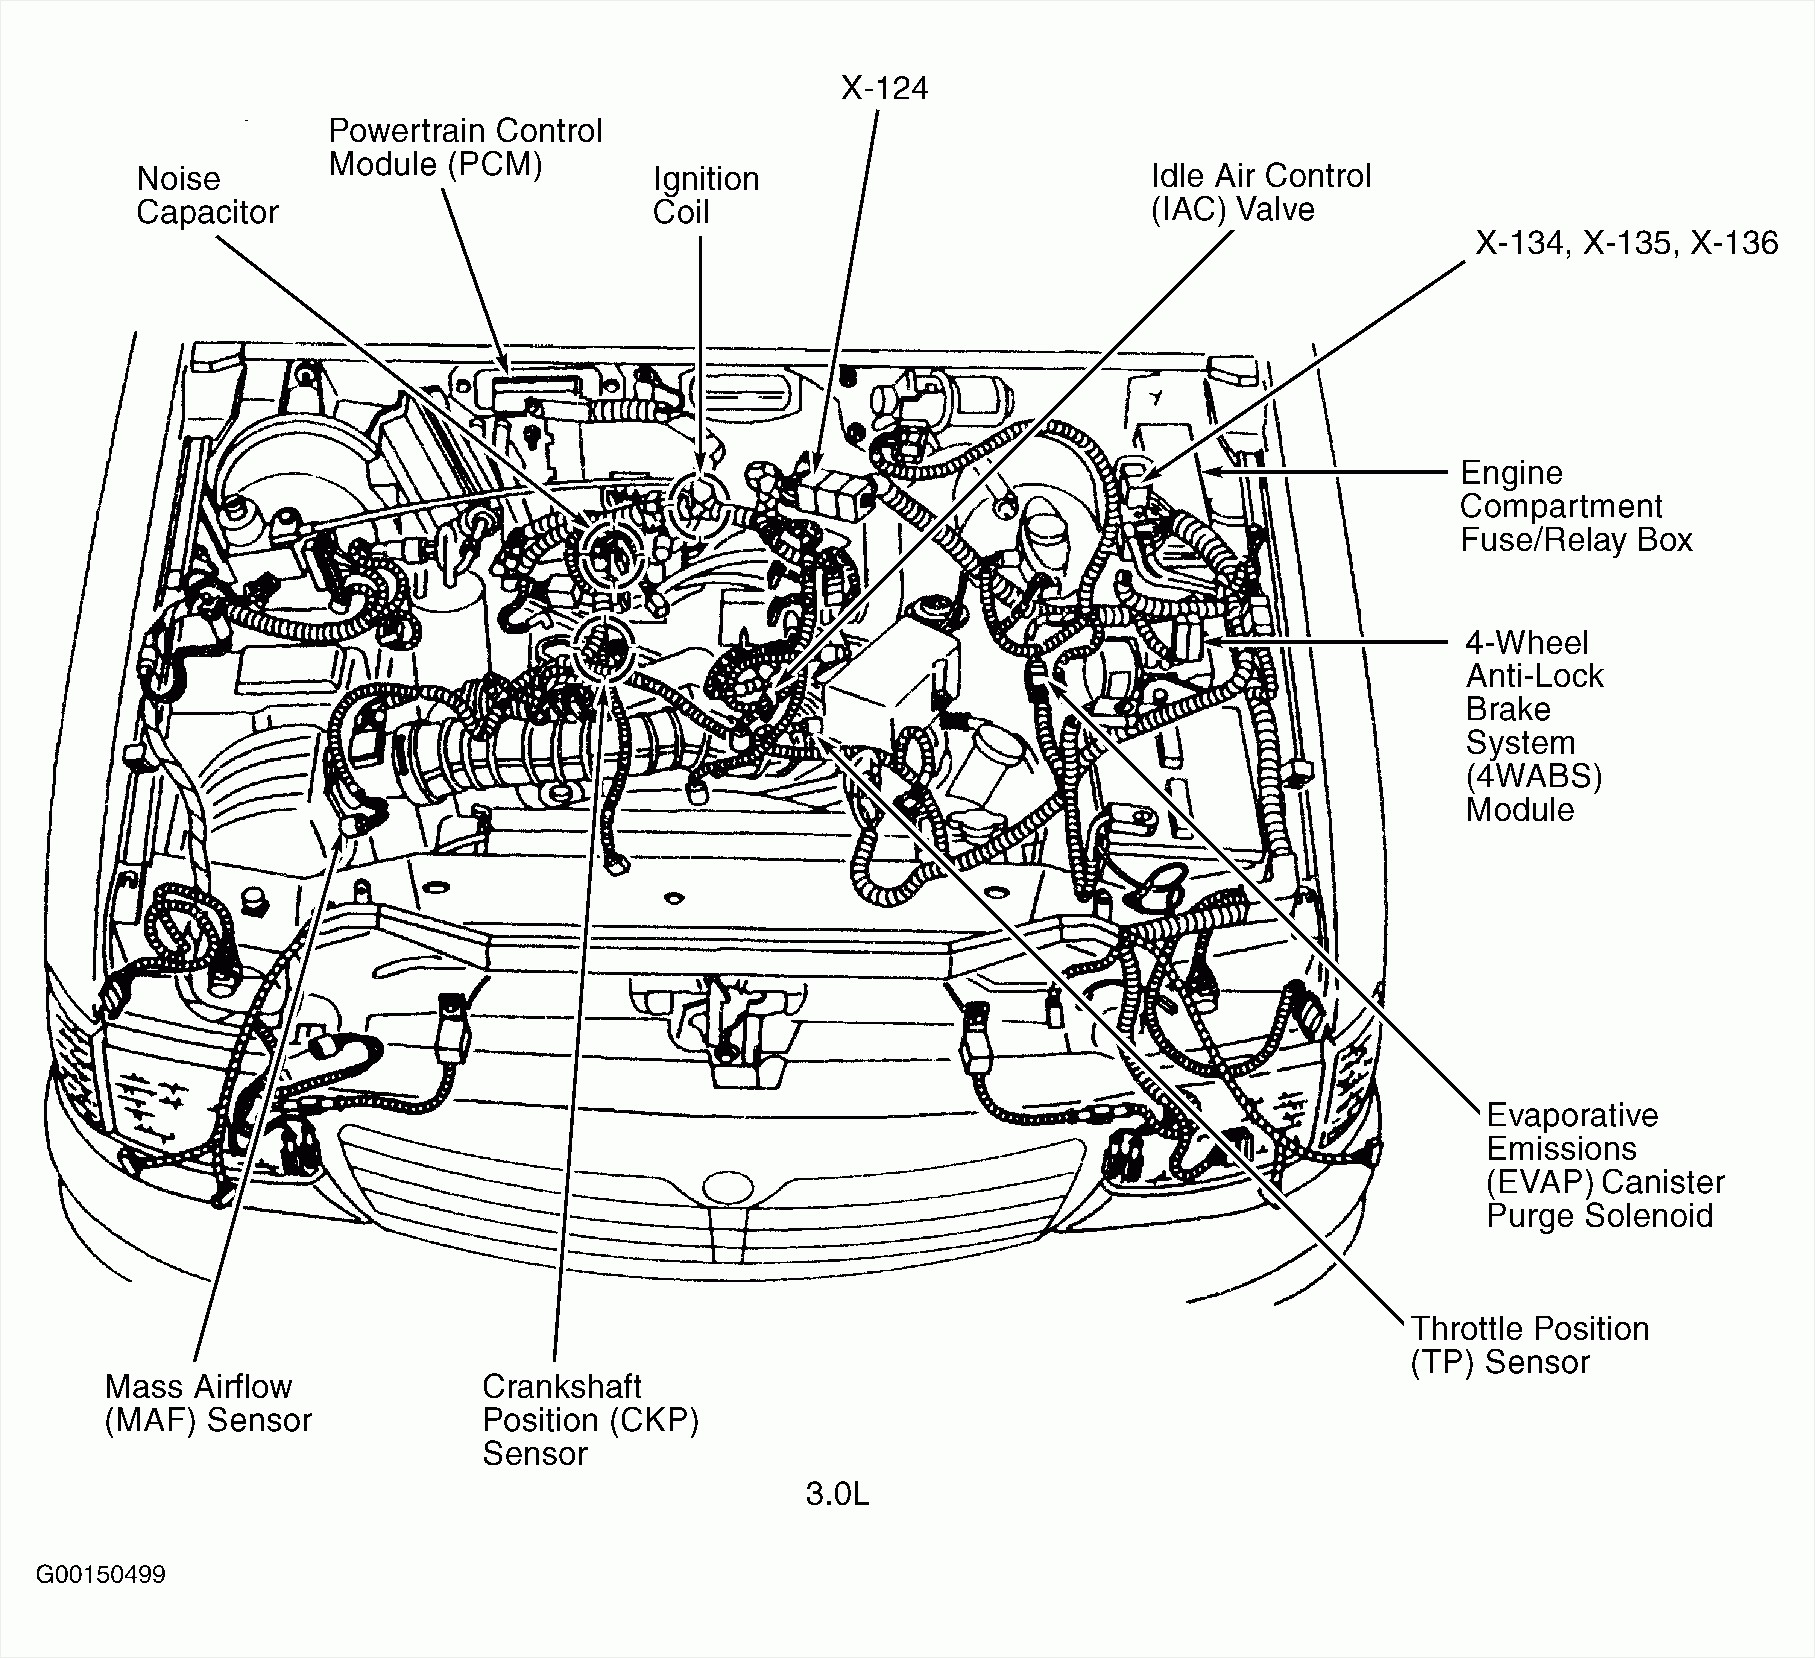 2003 Volkswagen Jetta Engine Diagram List Of Schematic Circuit 97 Fuse Box Wiring Diagrams Auto Electrical Rh Stanford Edu Uk Co Gov Sanjaydutt Me Tdi Vw